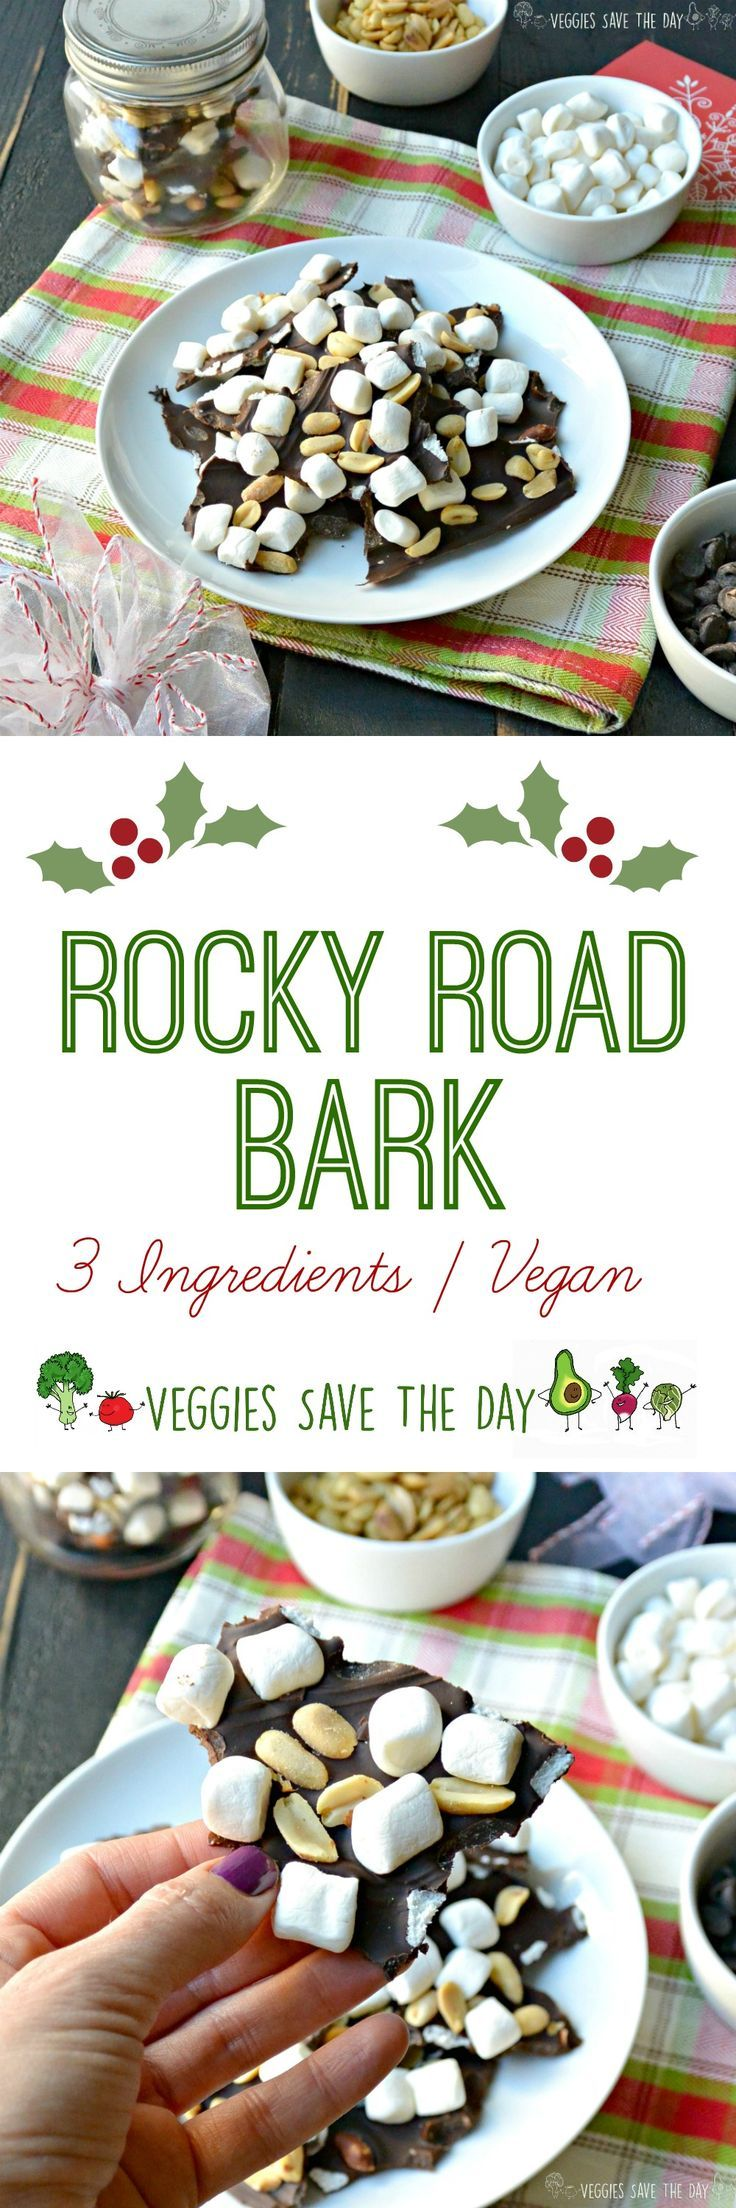 rocky road bark vegan is easy to make with only 3 ingredients its homemade christmas giftschristmas - Vegan Christmas Gifts